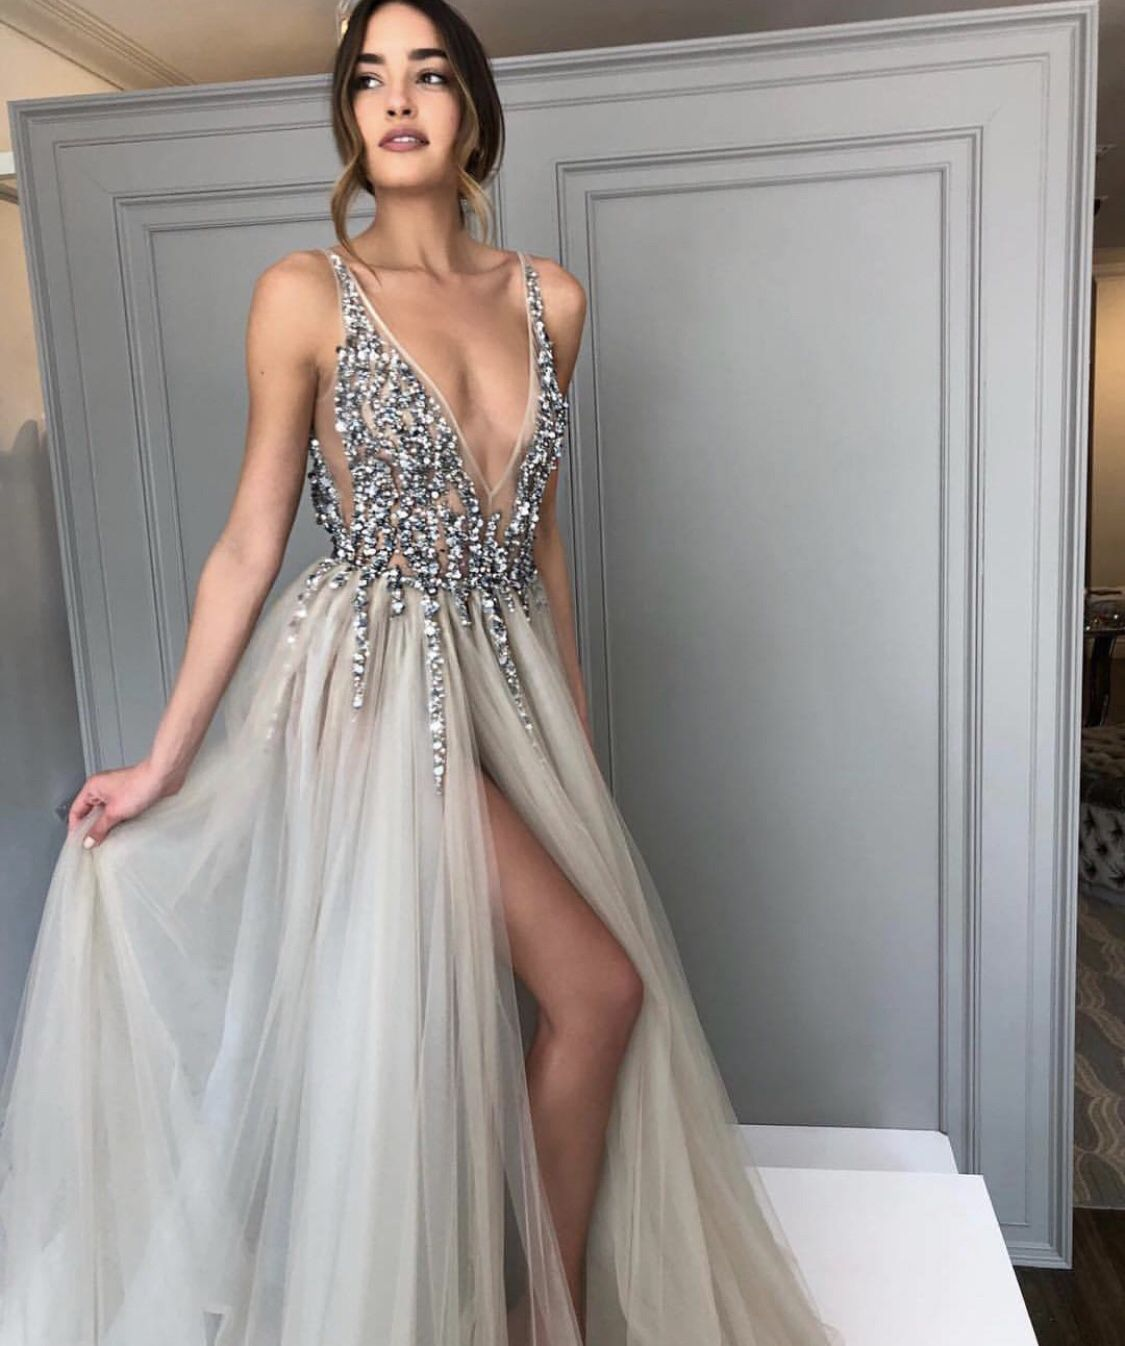 b1b591ea3 On Sale Absorbing Backless Prom Dresses, Sexy Prom Dresses, V Neck Prom  Dresses